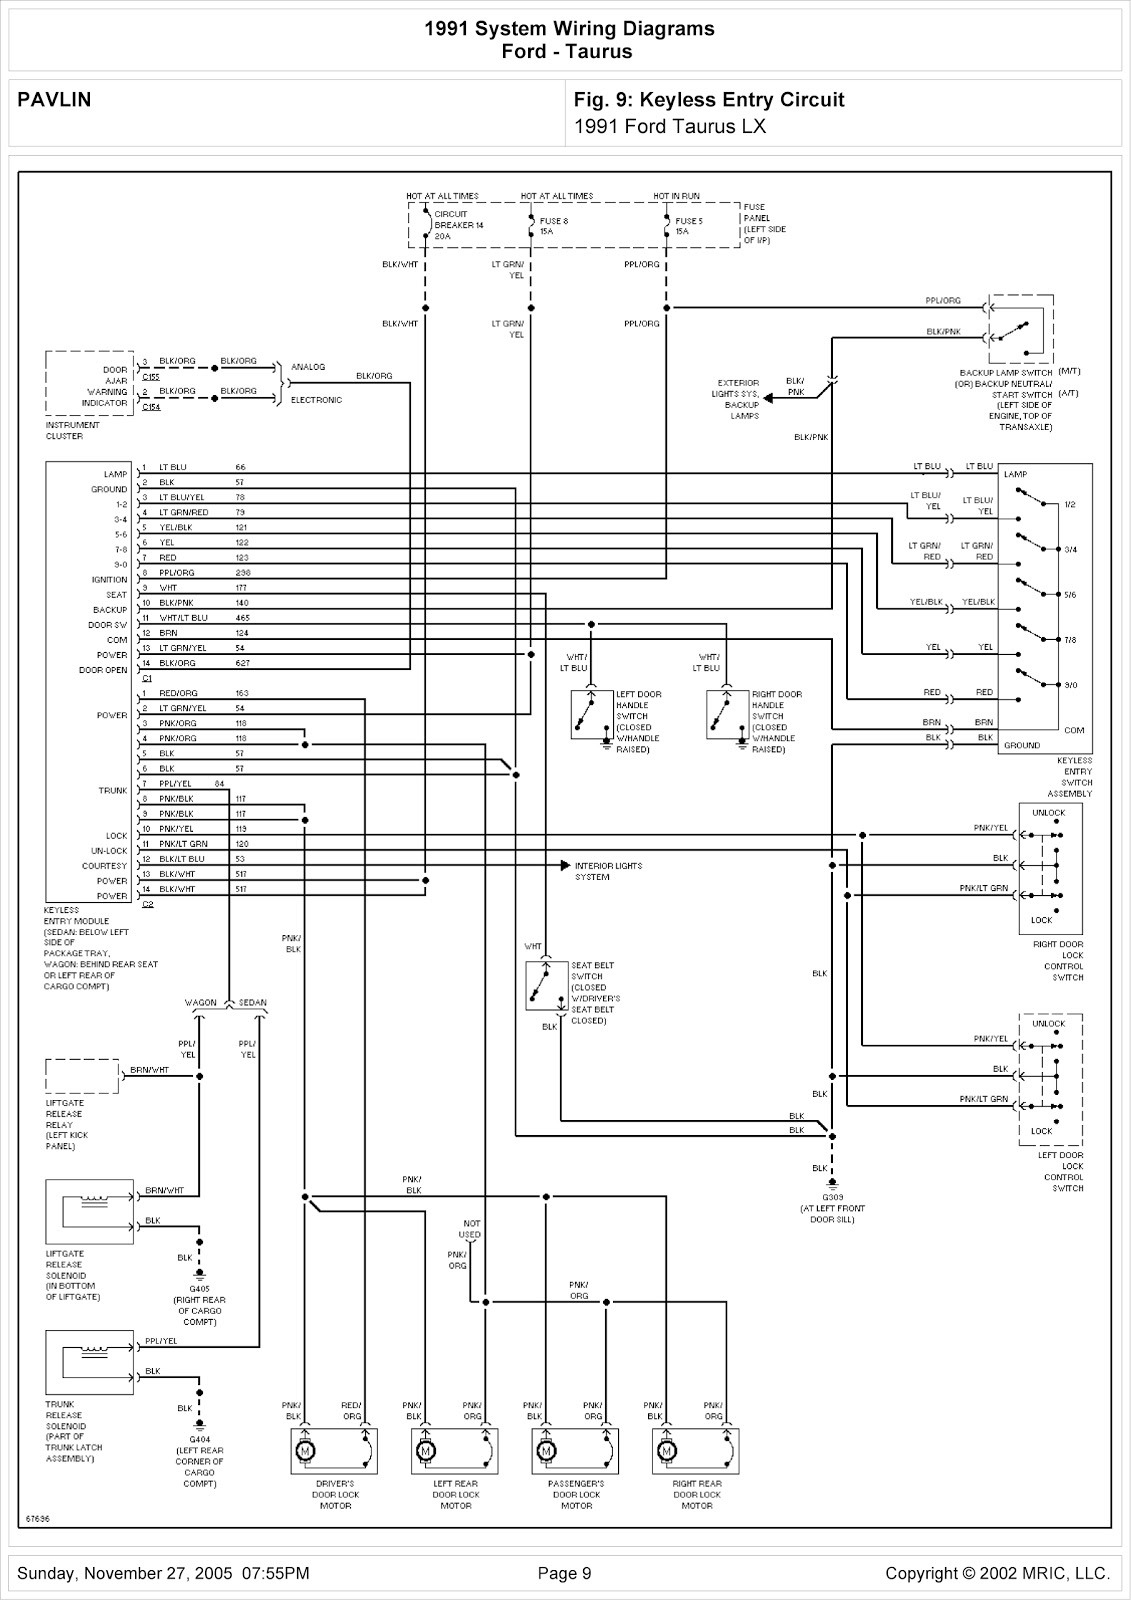 Ford Taurus Wiring Schematic - Wiring Diagram Direct heat-ambition -  heat-ambition.siciliabeb.it | 2005 Ford Taurus Wiring Diagrams |  | heat-ambition.siciliabeb.it